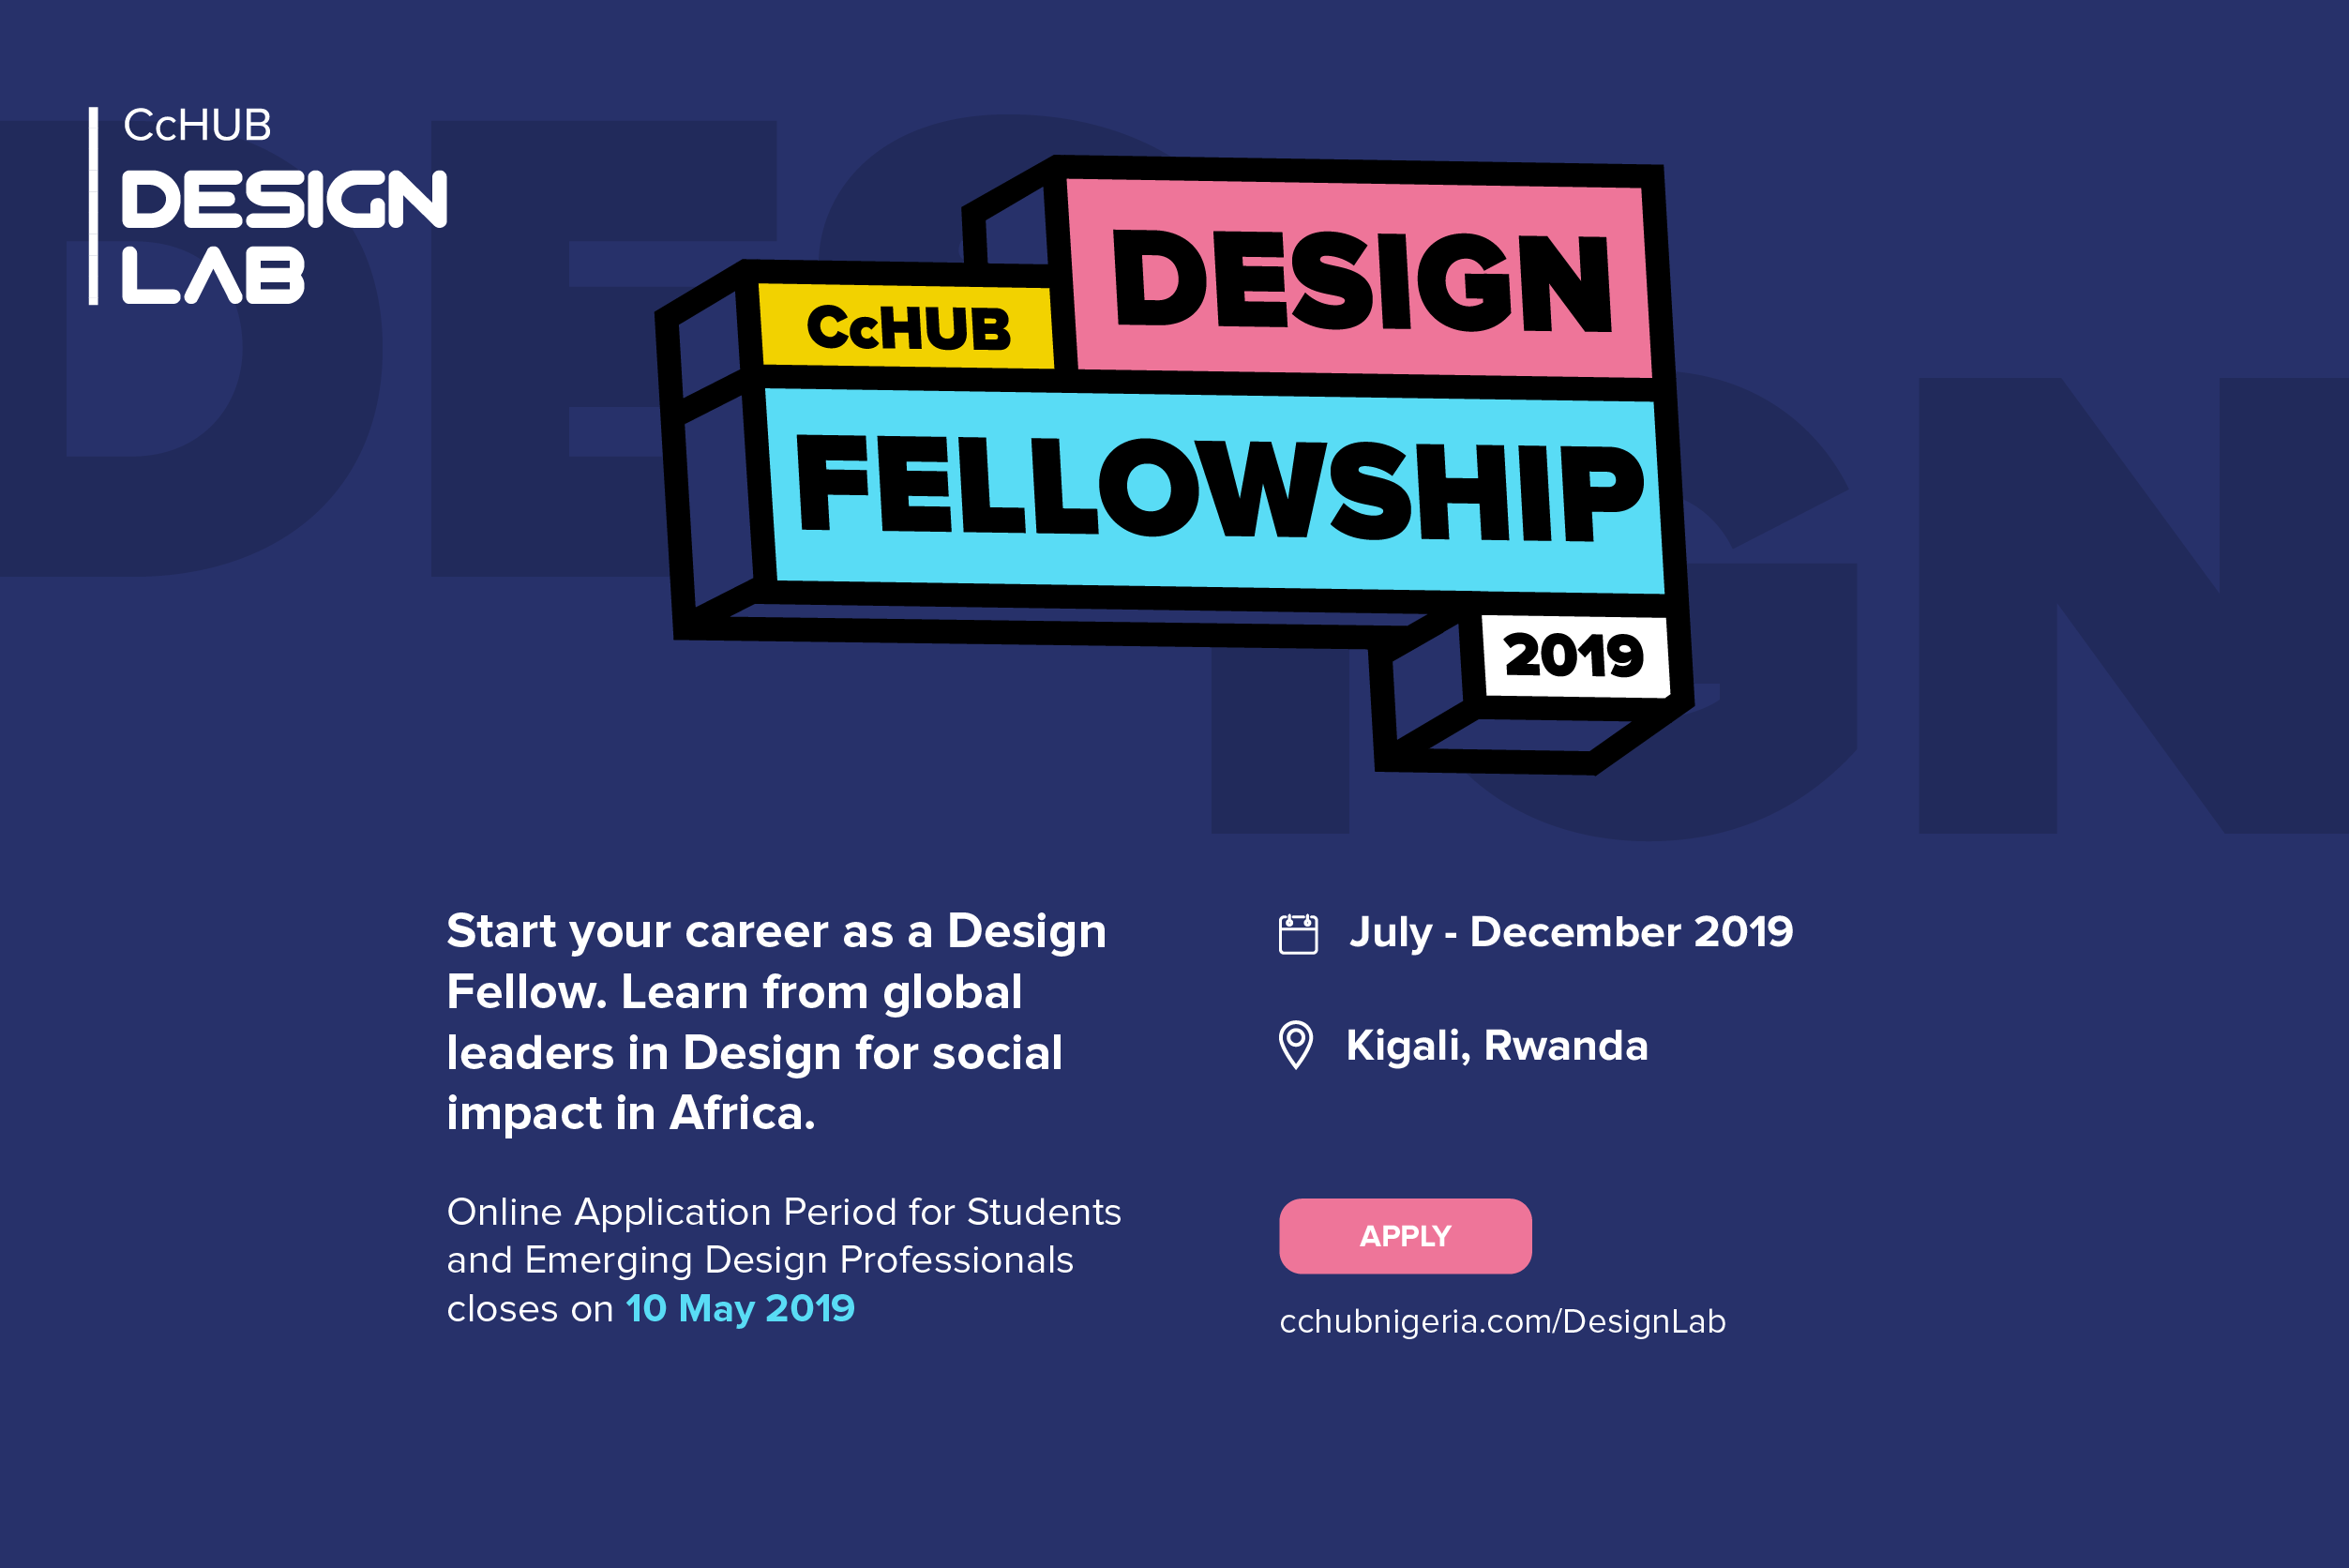 Co-Creation Hub (CcHUB) Design Fellowship 2019